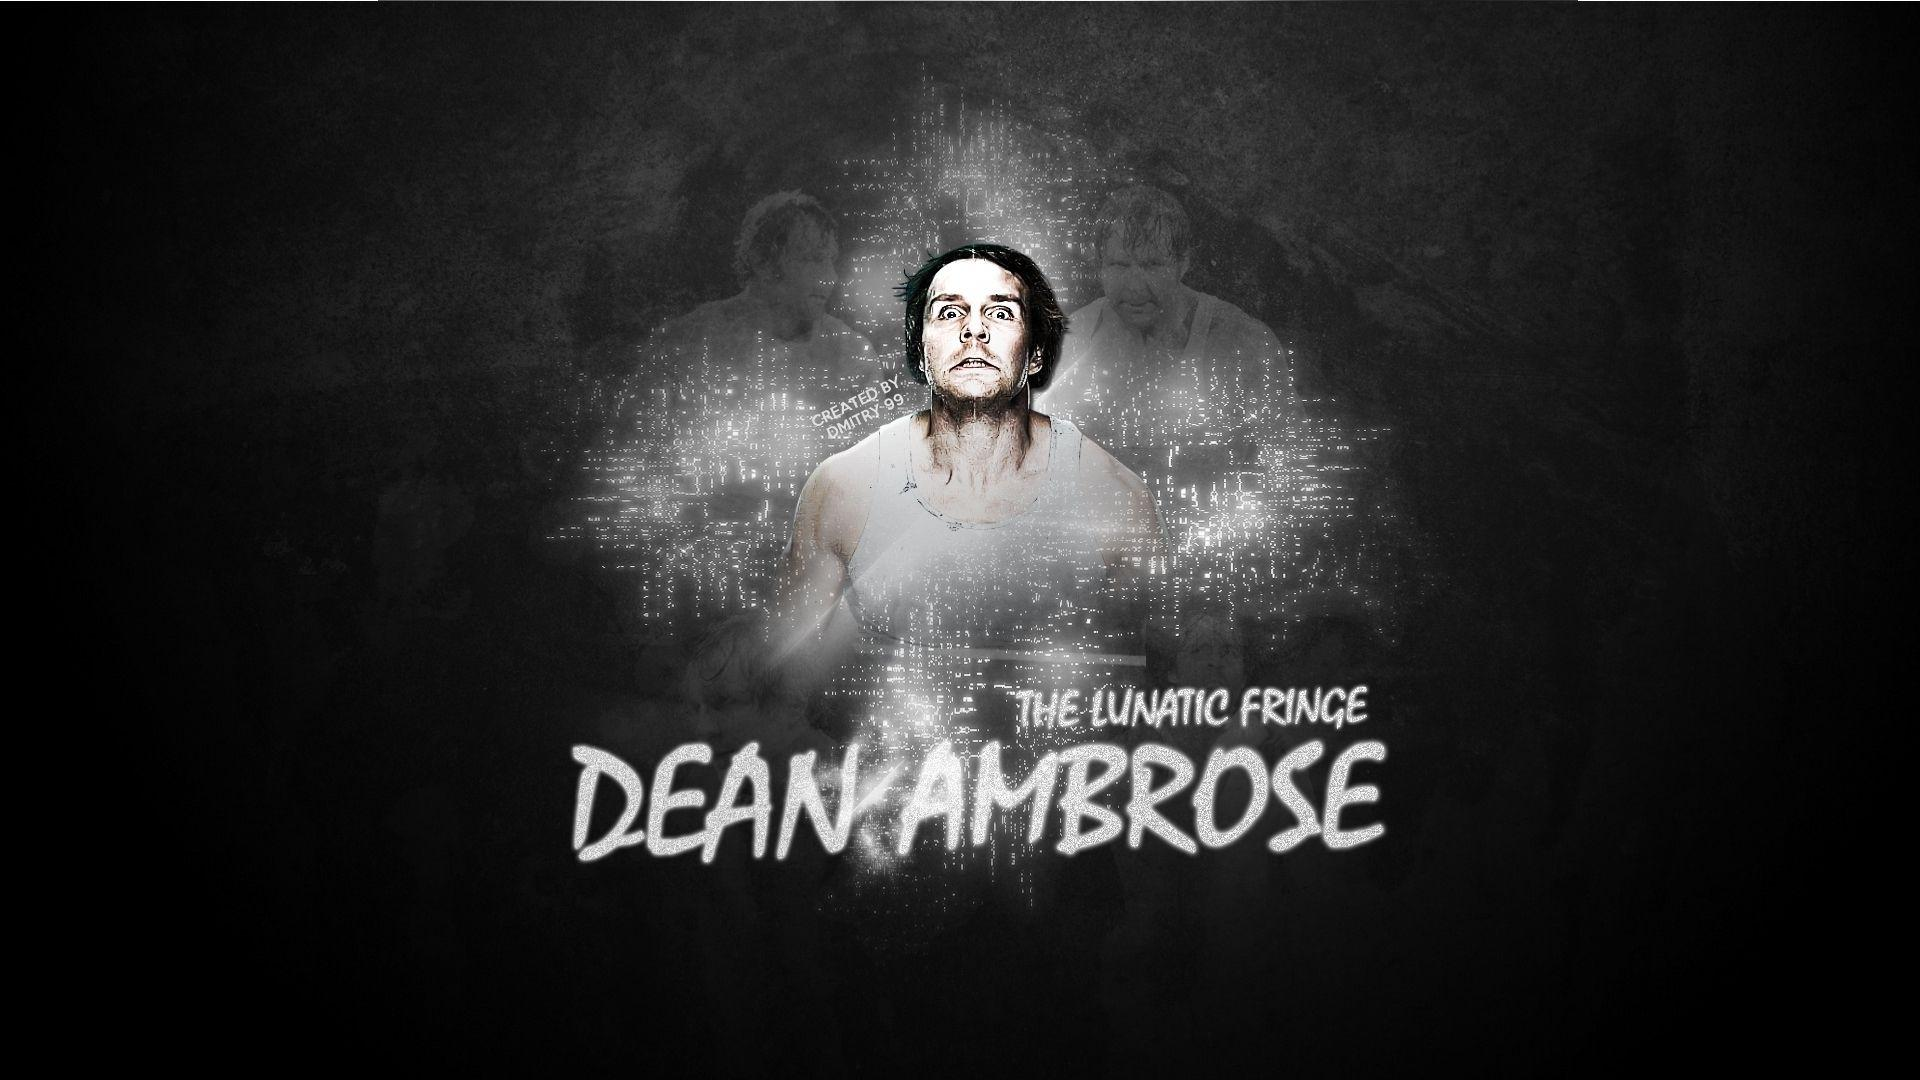 Dean Ambrose HD wallpaper for download